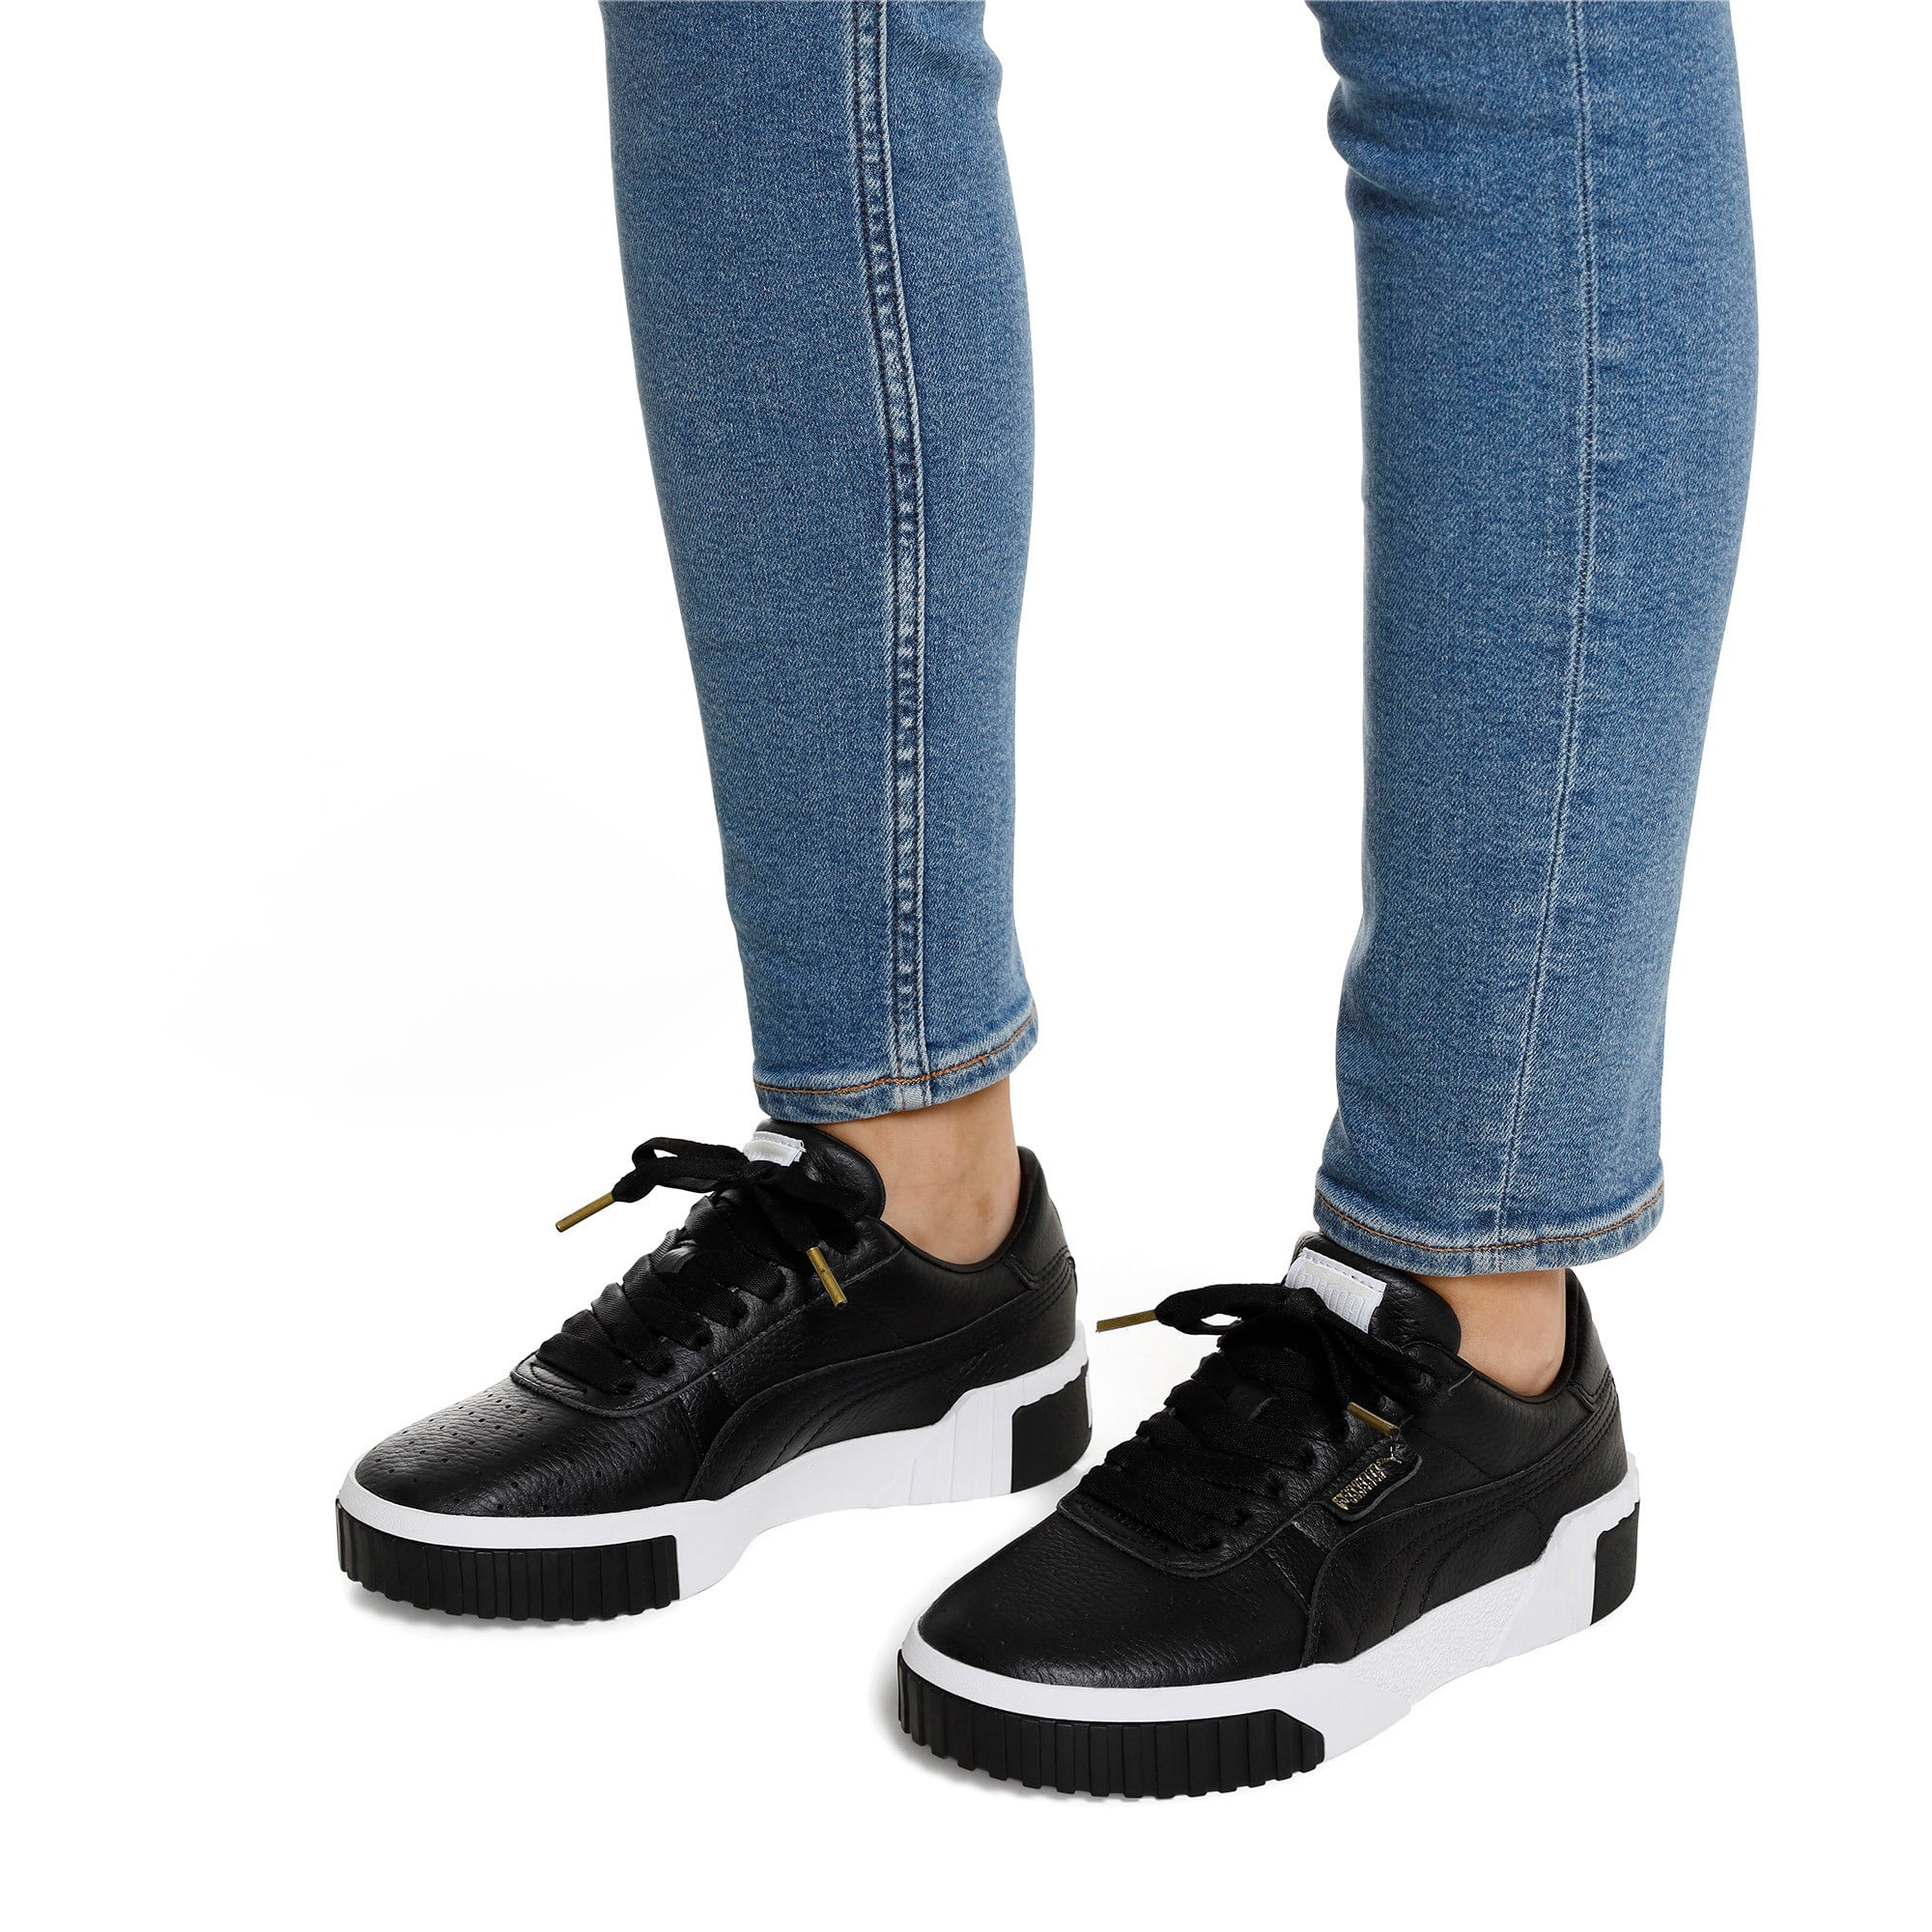 Thumbnail 2 of Cali Women's Trainers, Puma Black-Puma White, medium